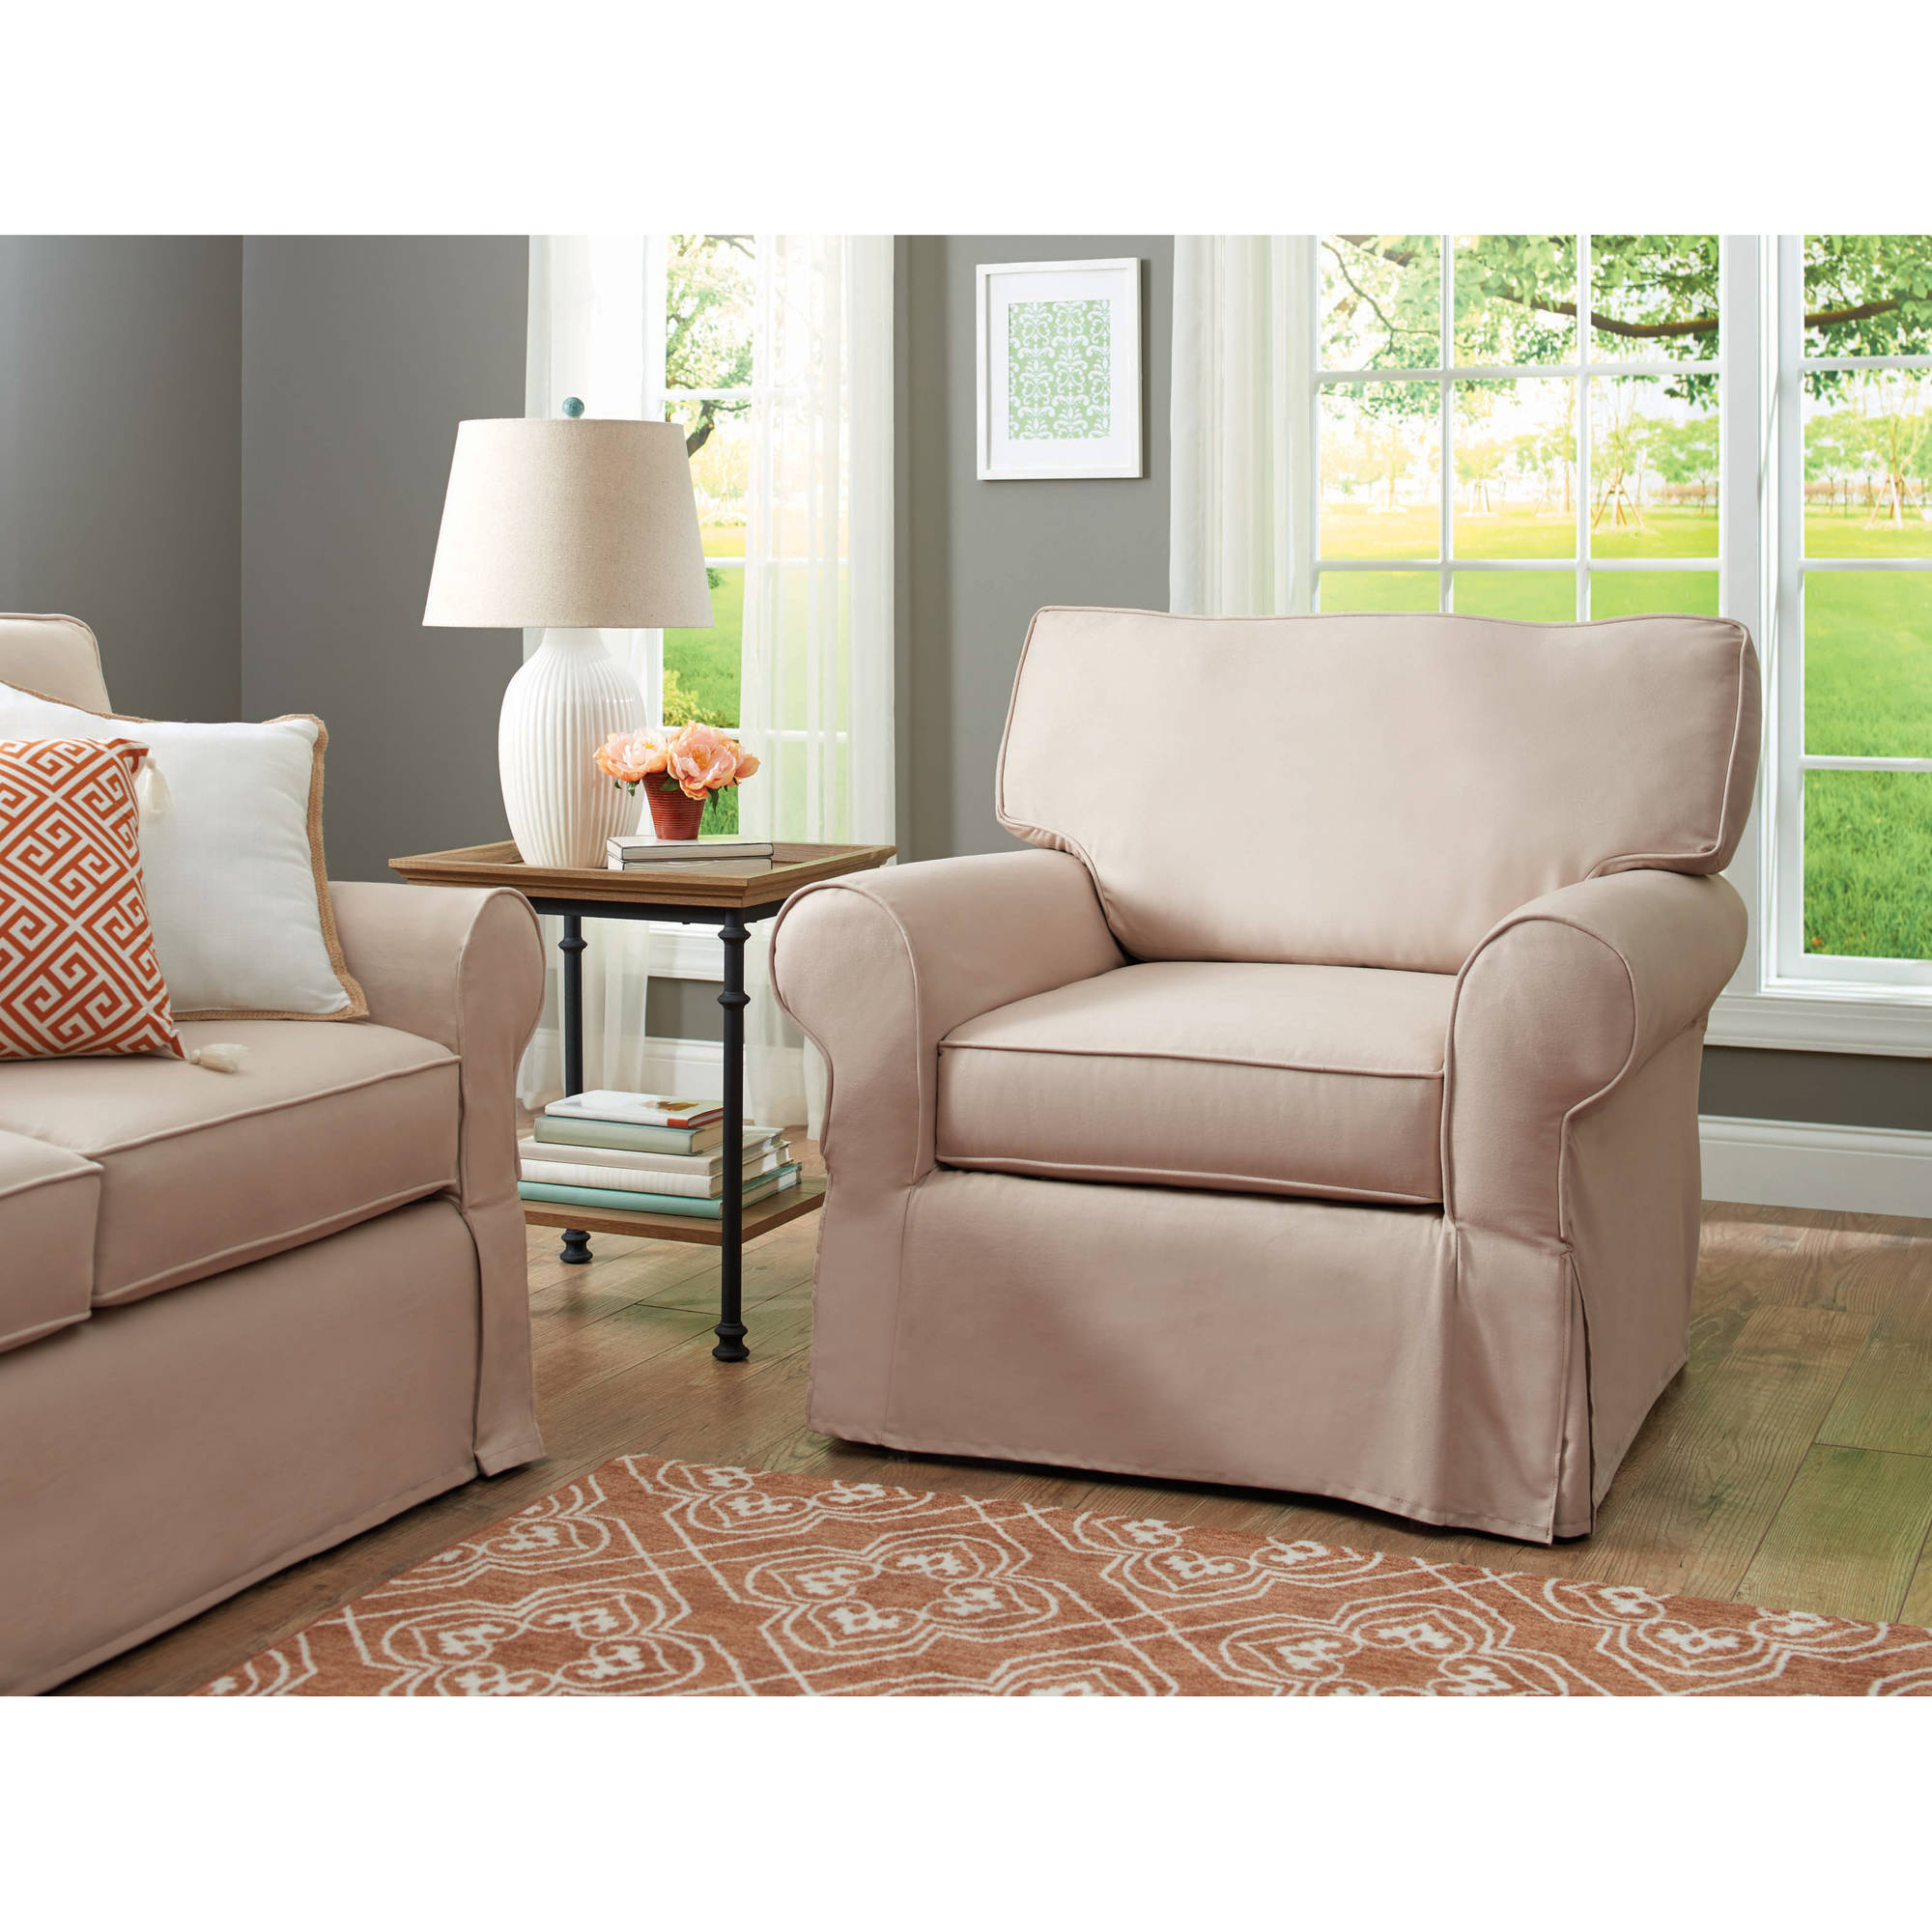 Better Homes and Gardens Slip Cover Pala Arm Chair, Multiple Colors